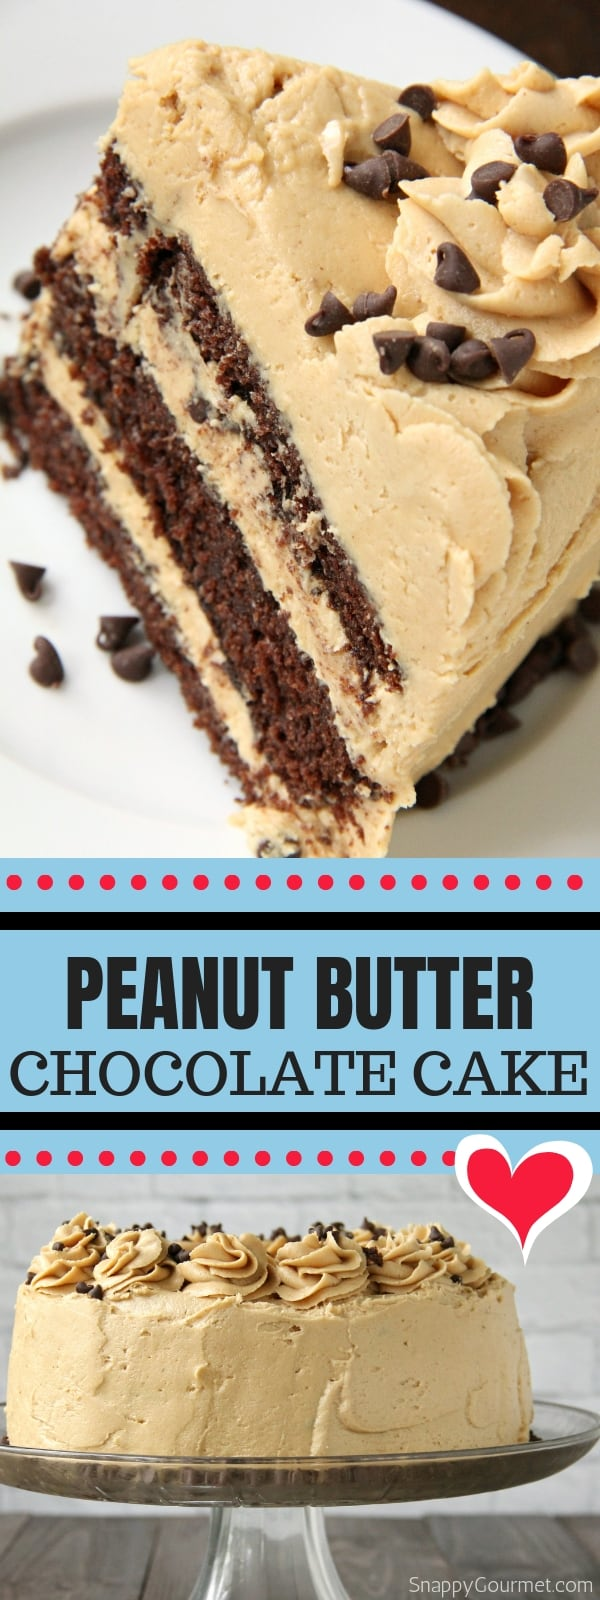 Peanut Butter Chocolate Cake collage